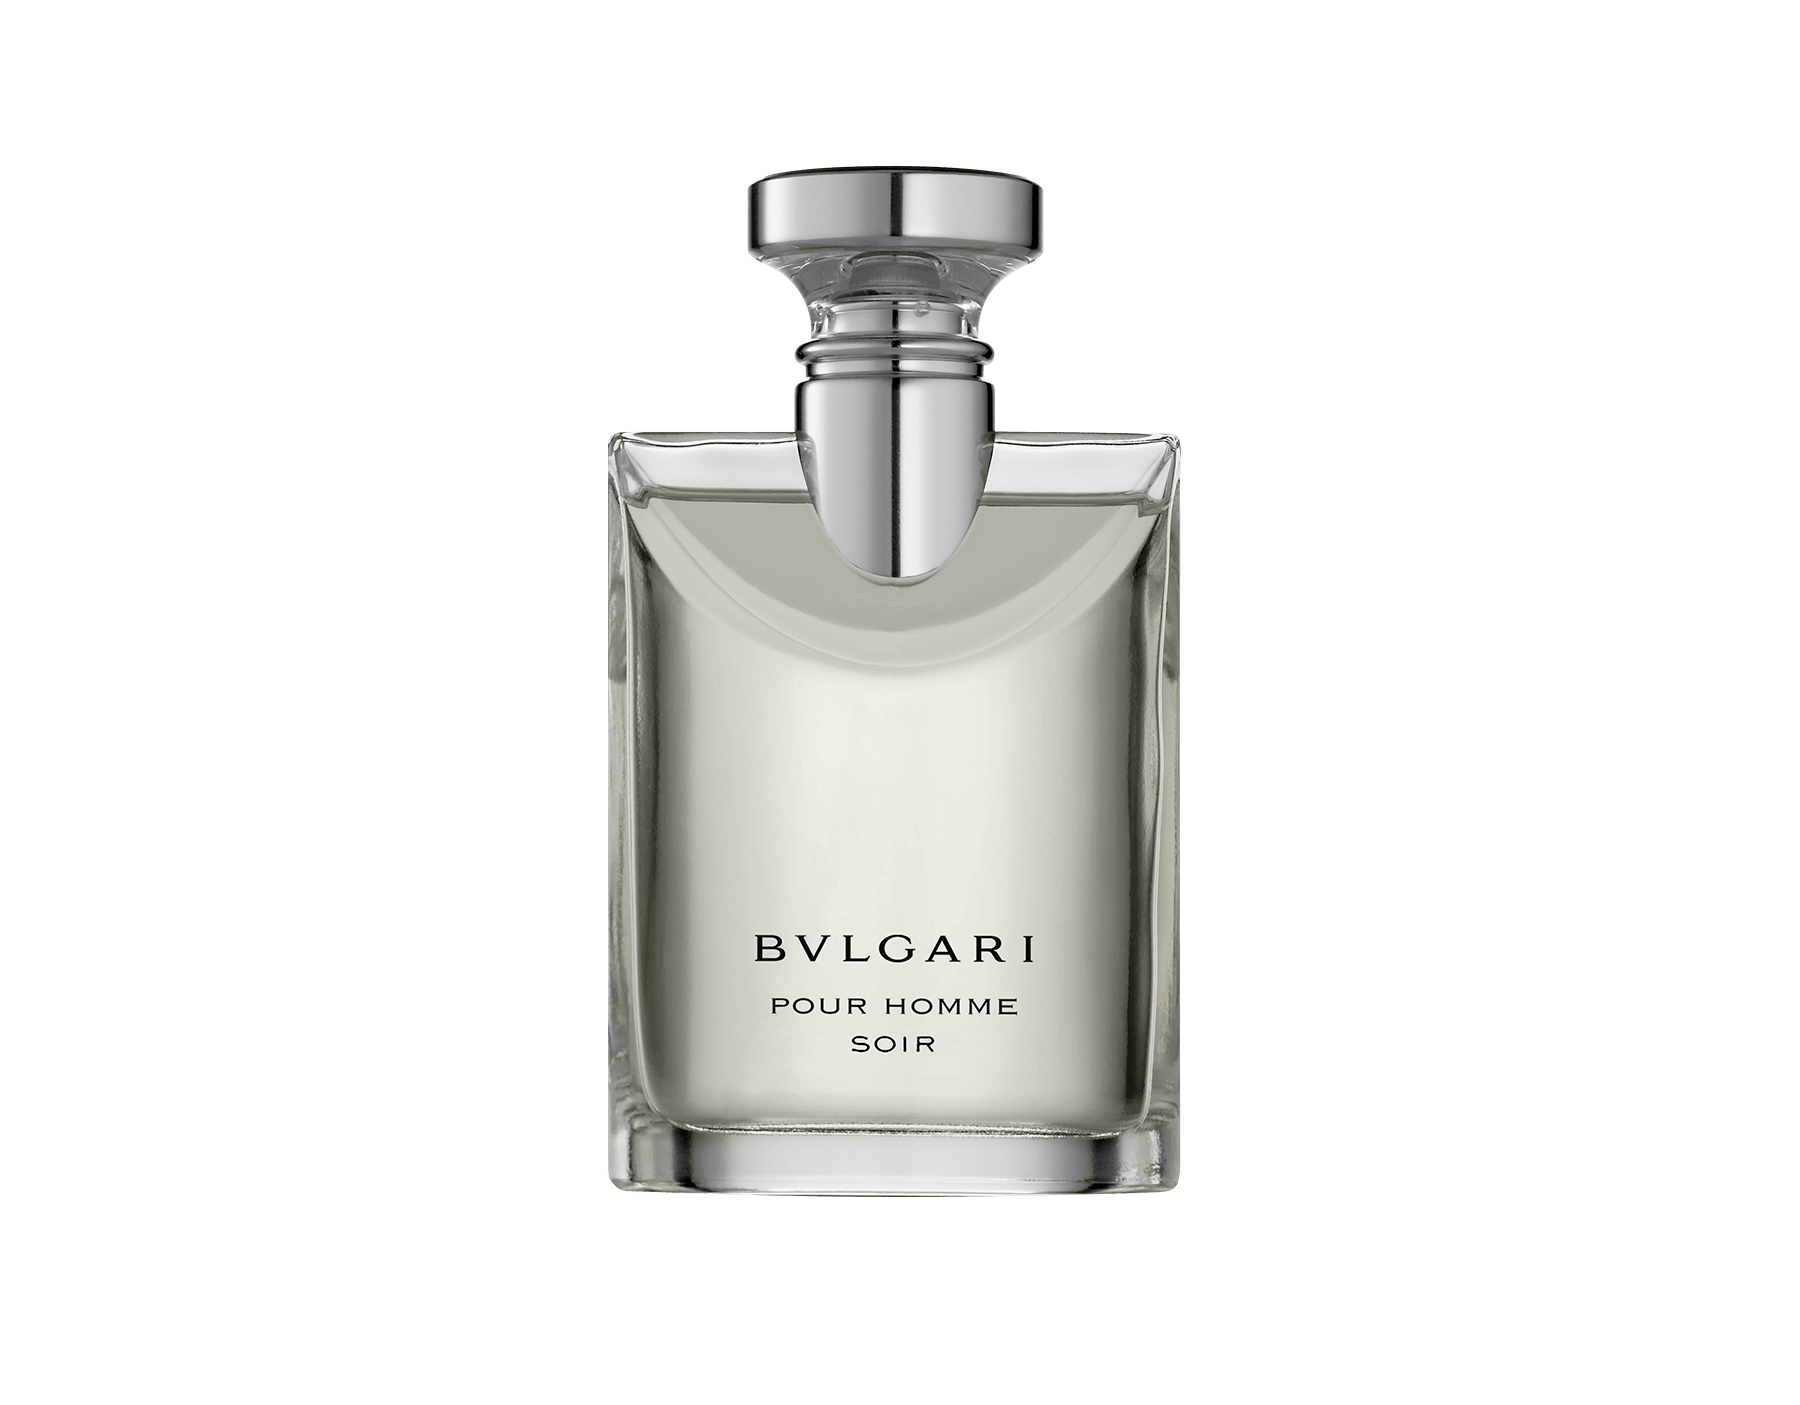 A contemporary and classic fragrance for men 83156 image 1